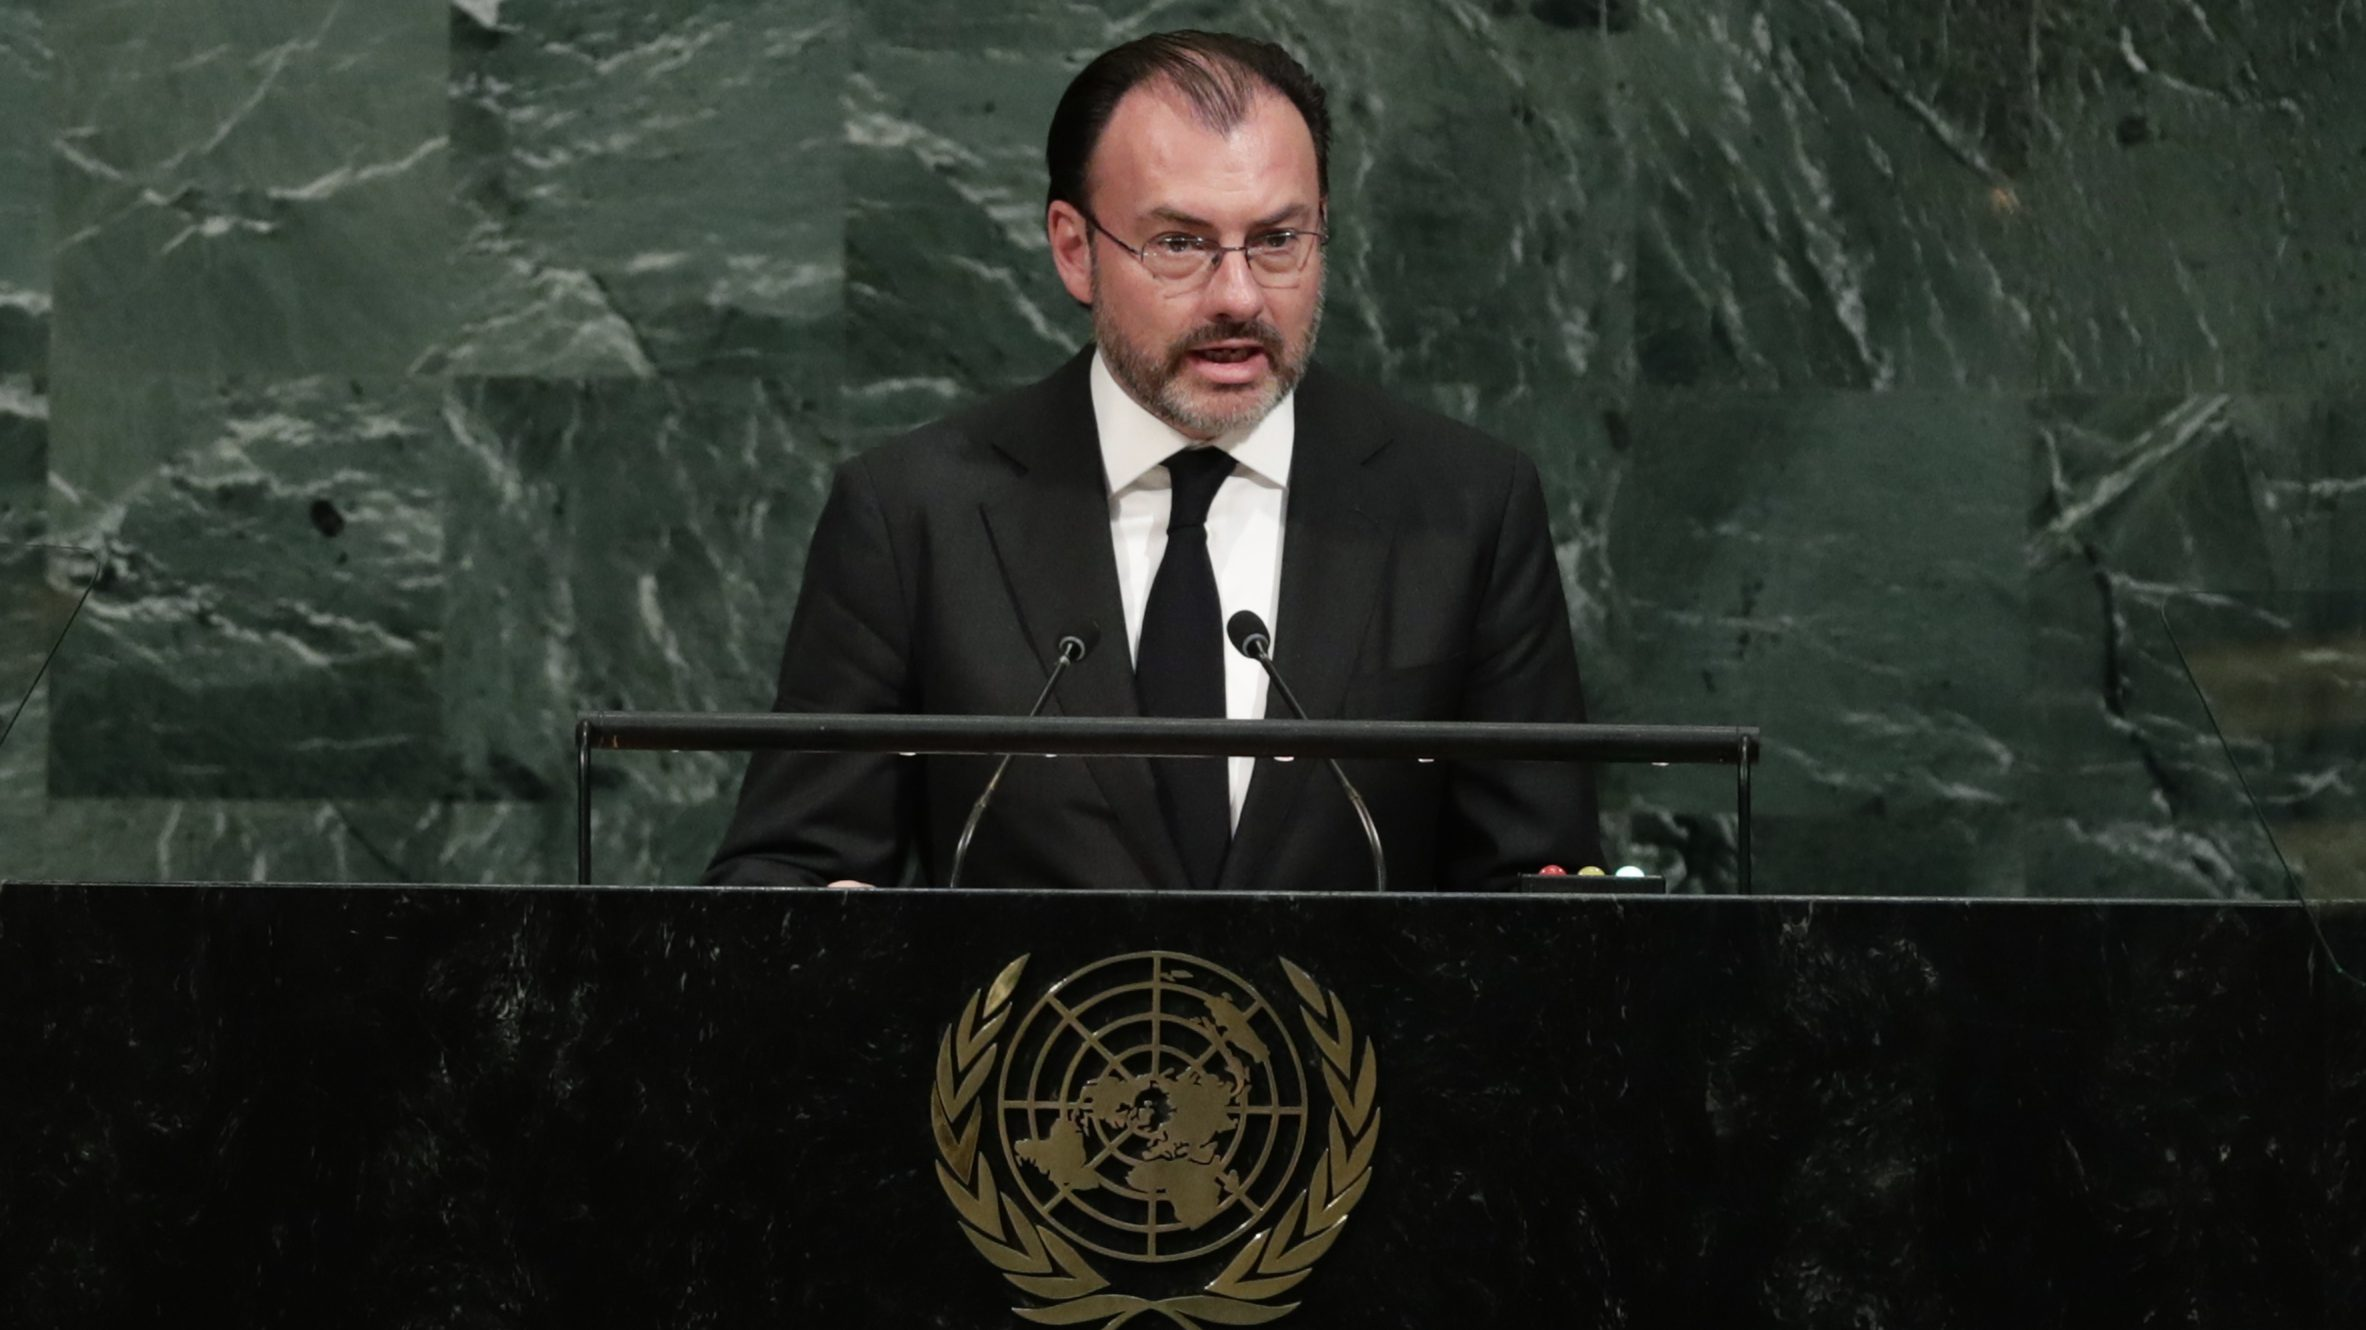 Mexican Foreign Relations Secretary Luis Videgaray addresses the United Nations General Assembly Thursday, Sept. 21, 2017, at the United Nations headquarters. (AP Photo/Frank Franklin II)